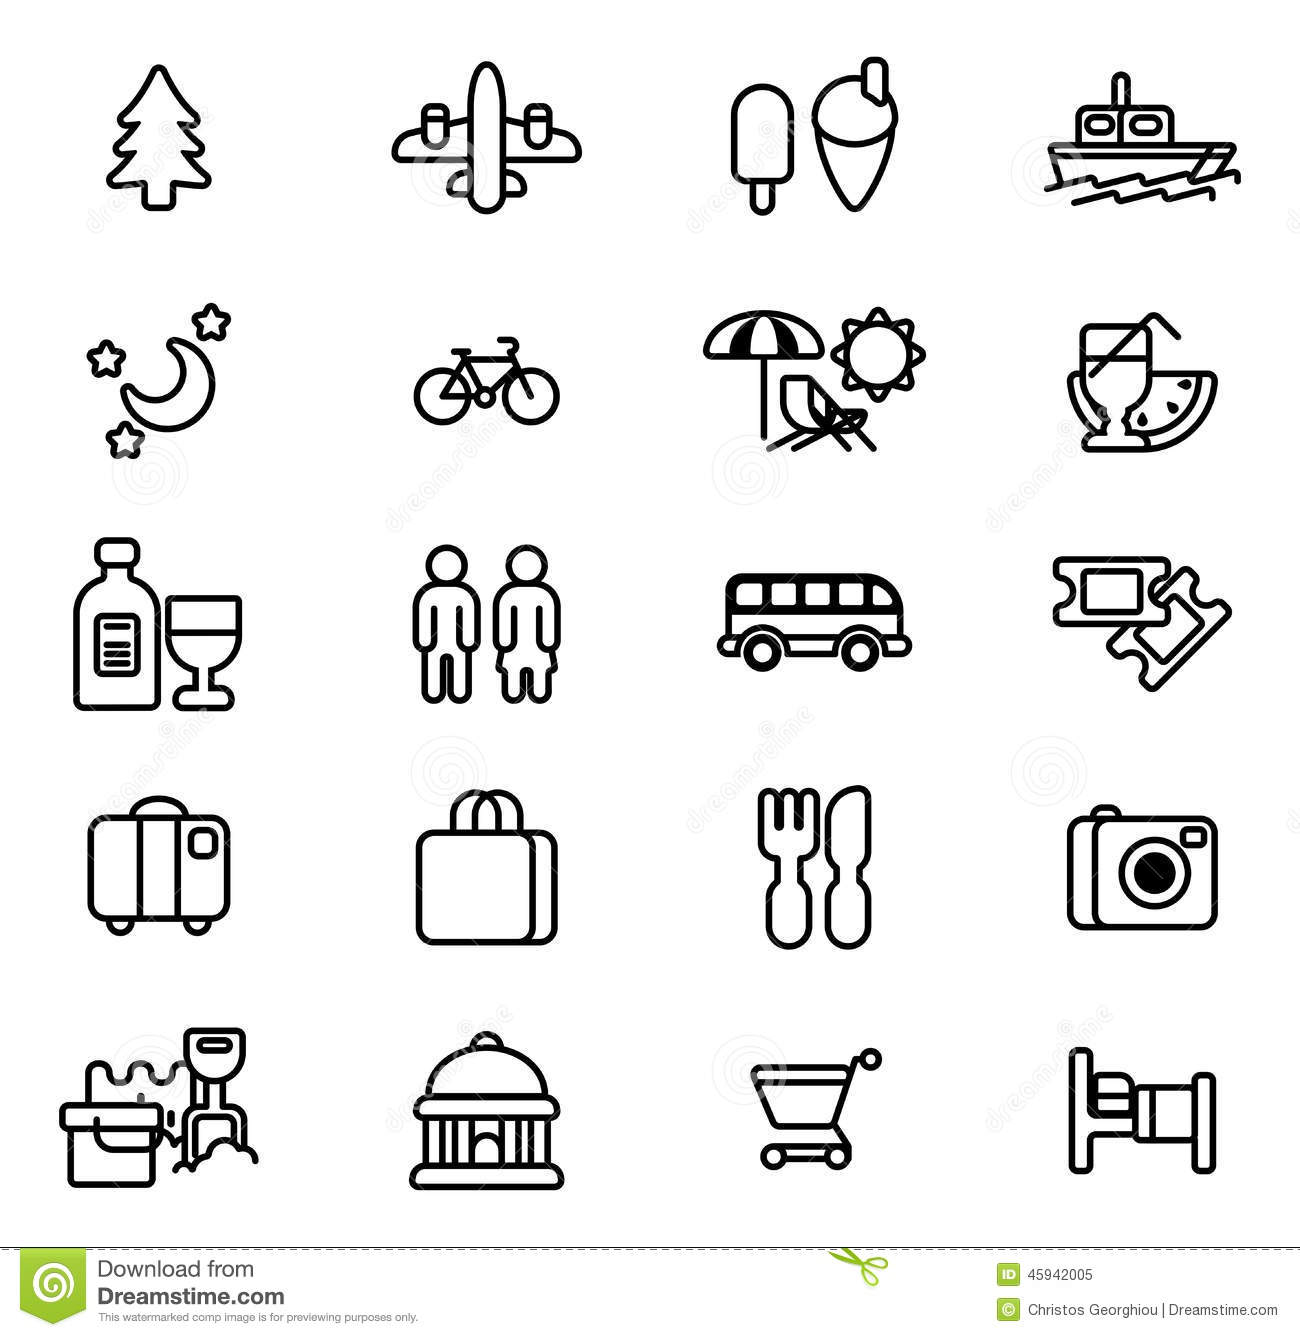 Stock Illustration Tourism Travel Icons Including Beach Deck Chair Airplane Icecream Museum Many More Image45942005 furthermore Wiring Diagram For Craftsman 22 Hp Mower as well Storage Box Wheels likewise 7378007 likewise 15413571. on brown deck